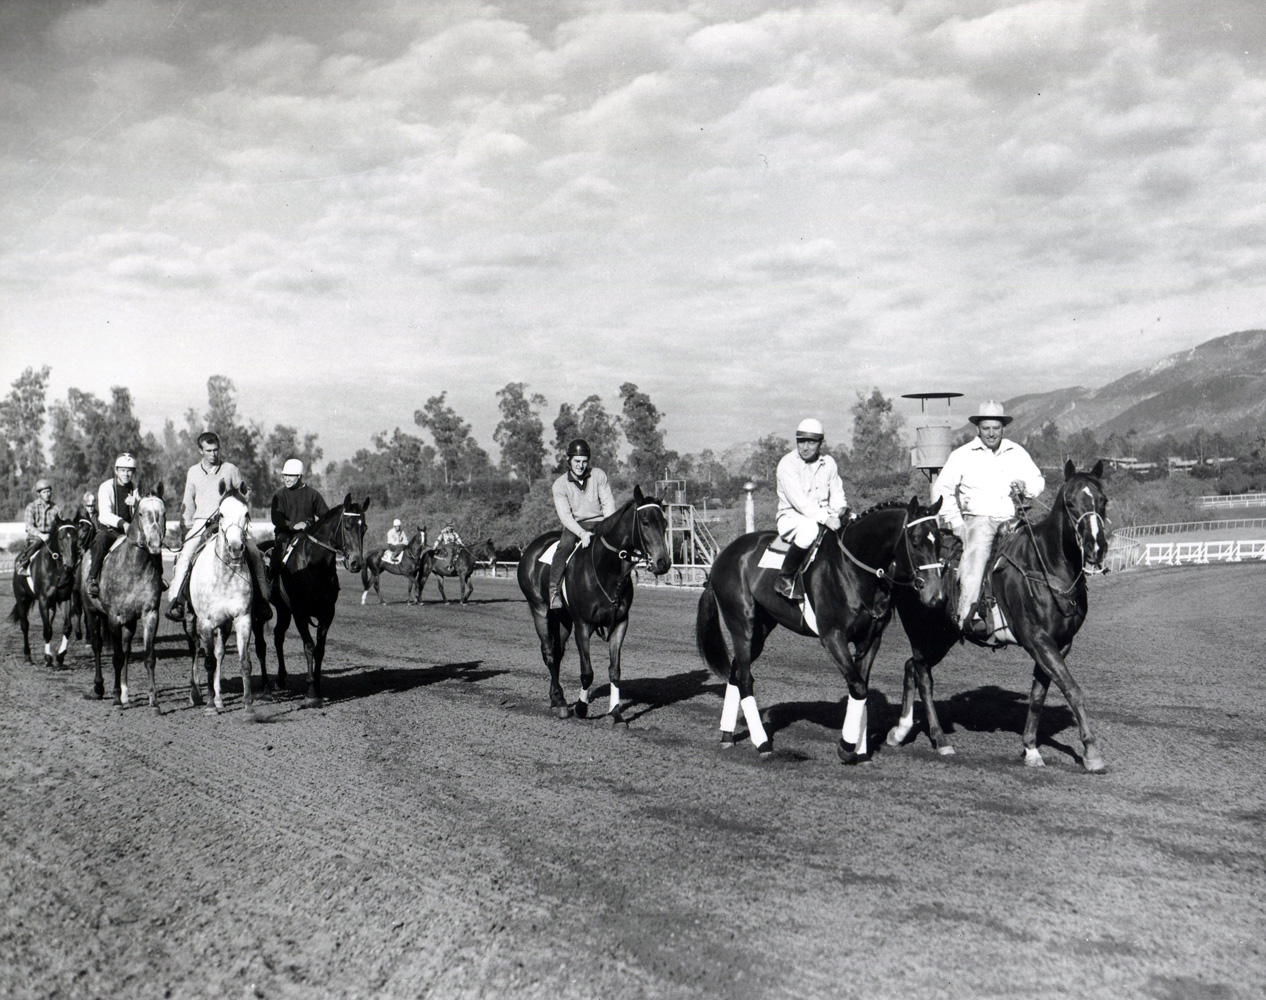 Robert Wheeler leading Tompion onto the track at Santa Anita Park, December 1960 (Bill Mochon/Museum Collection)